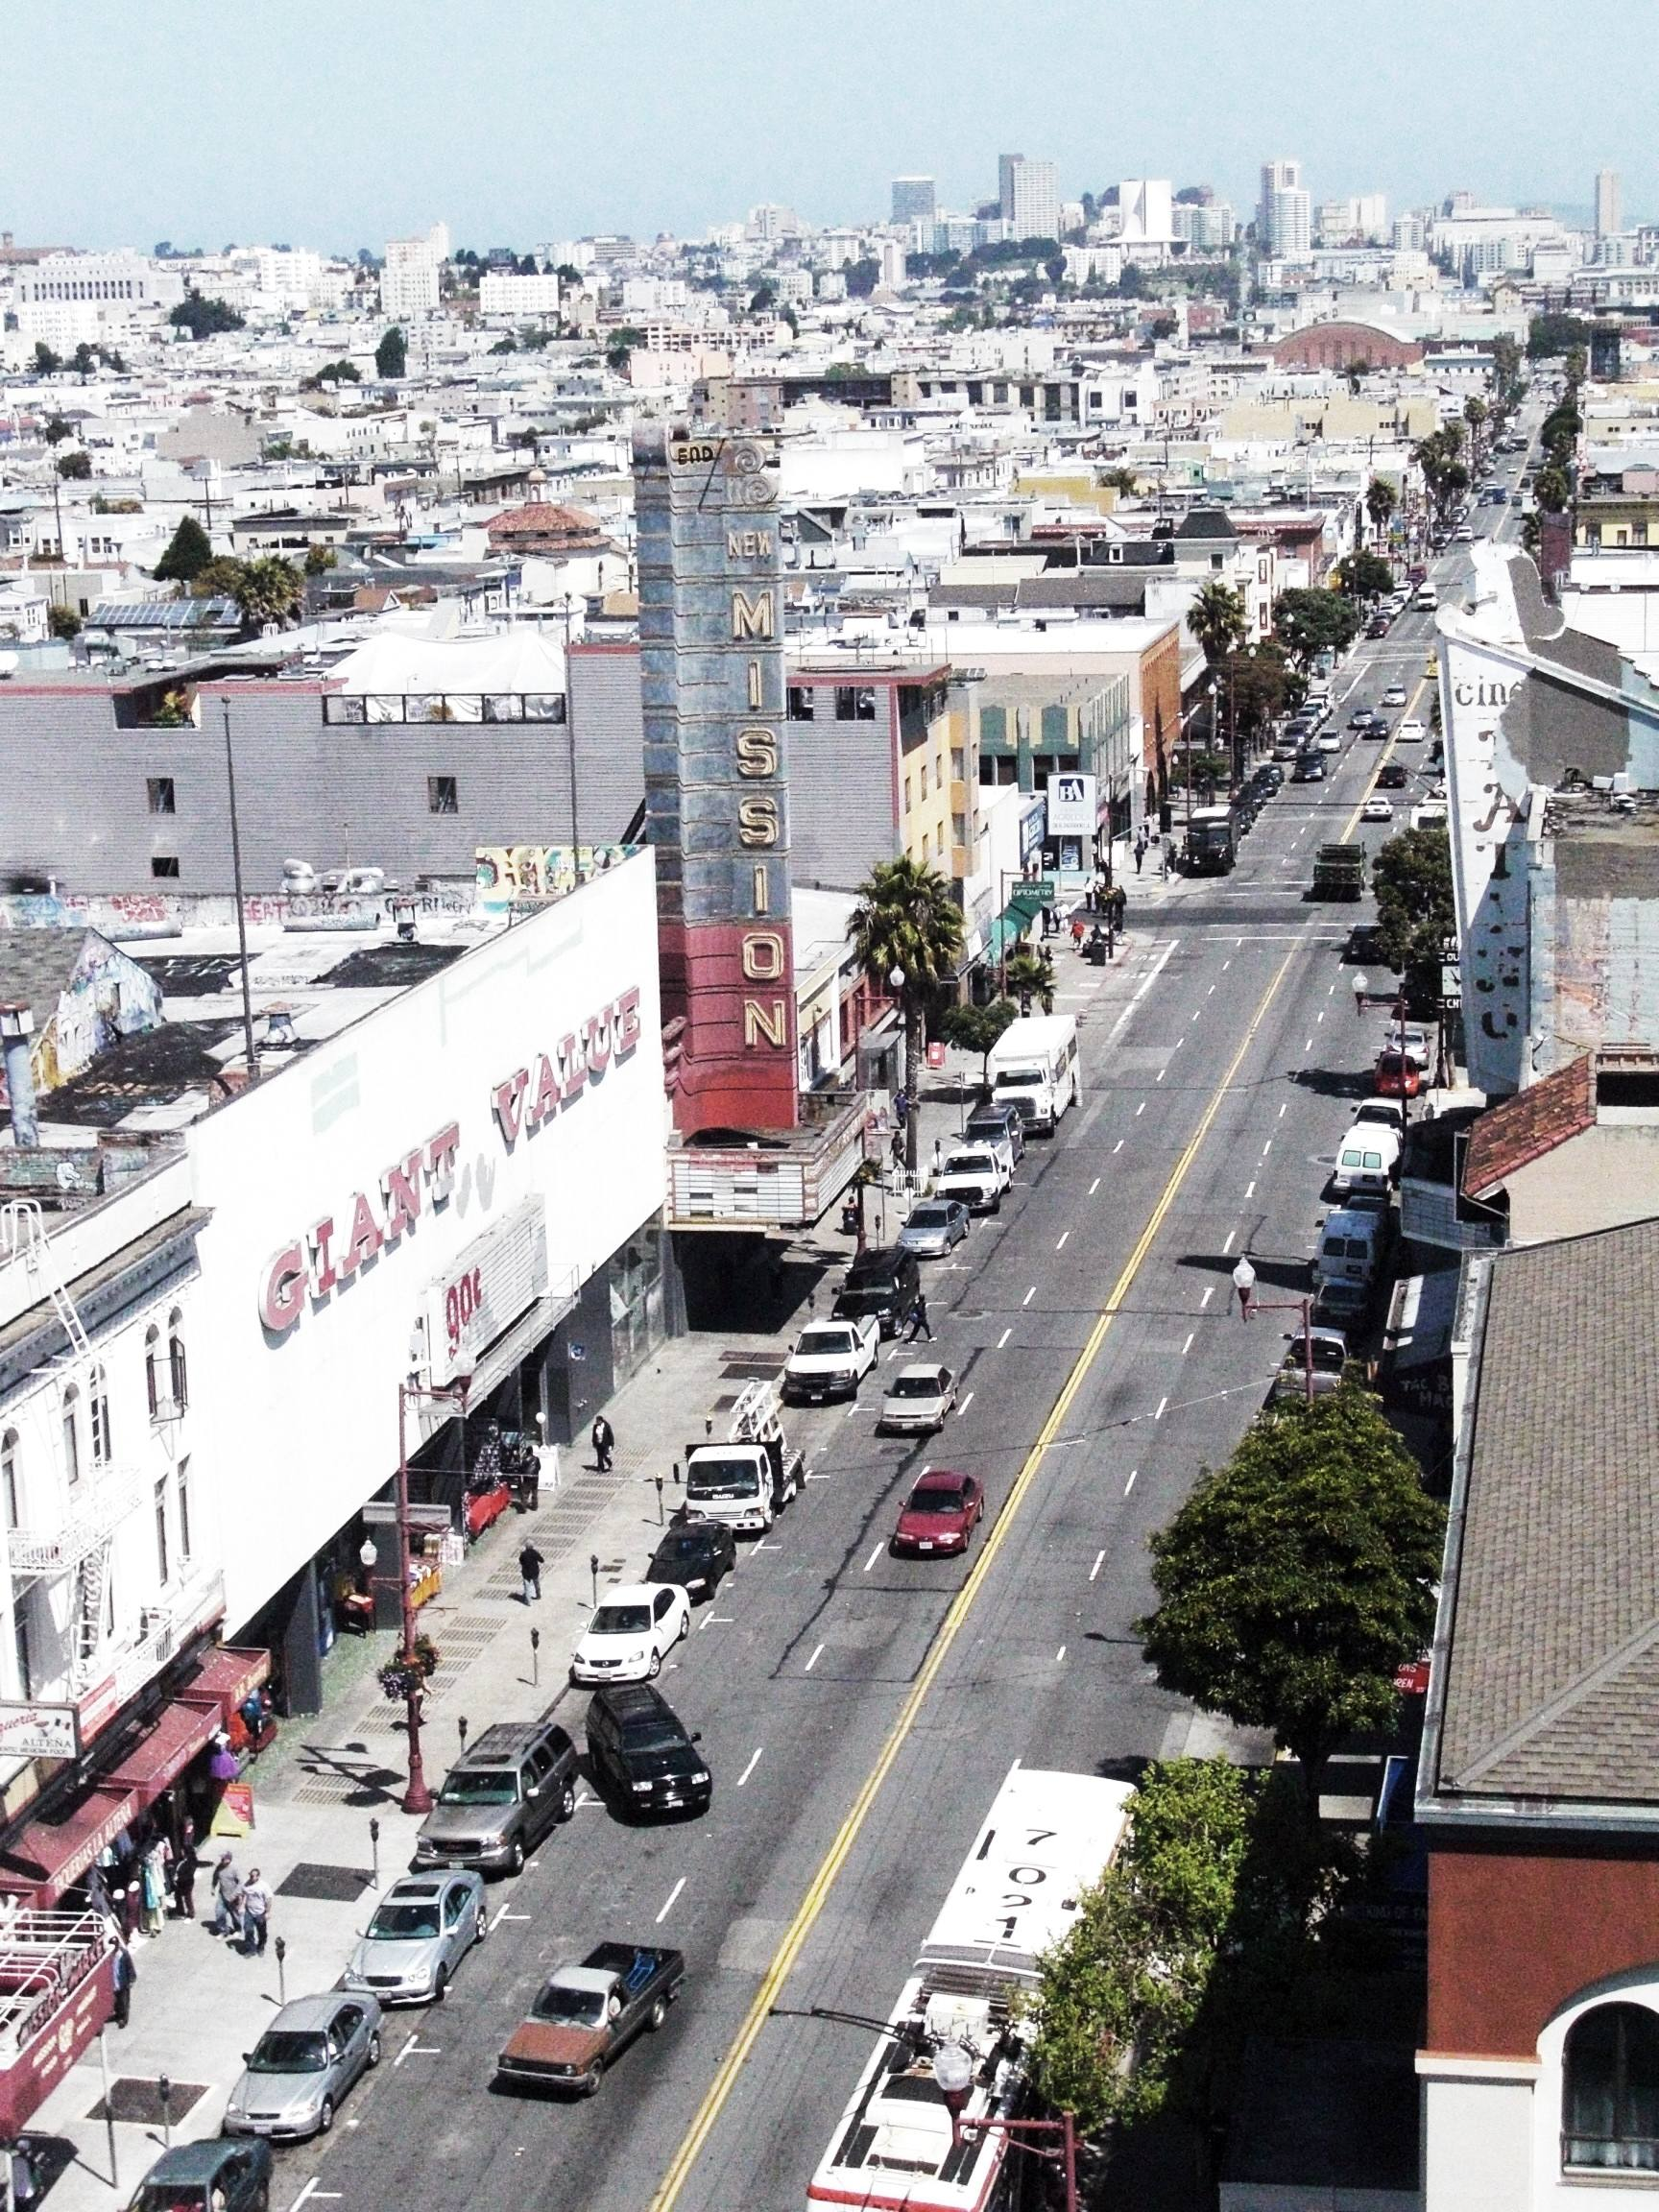 Mission Street looking north from 22nd Street, Mission District, San Francisco. Photo by Telstar Logistics/Flickr